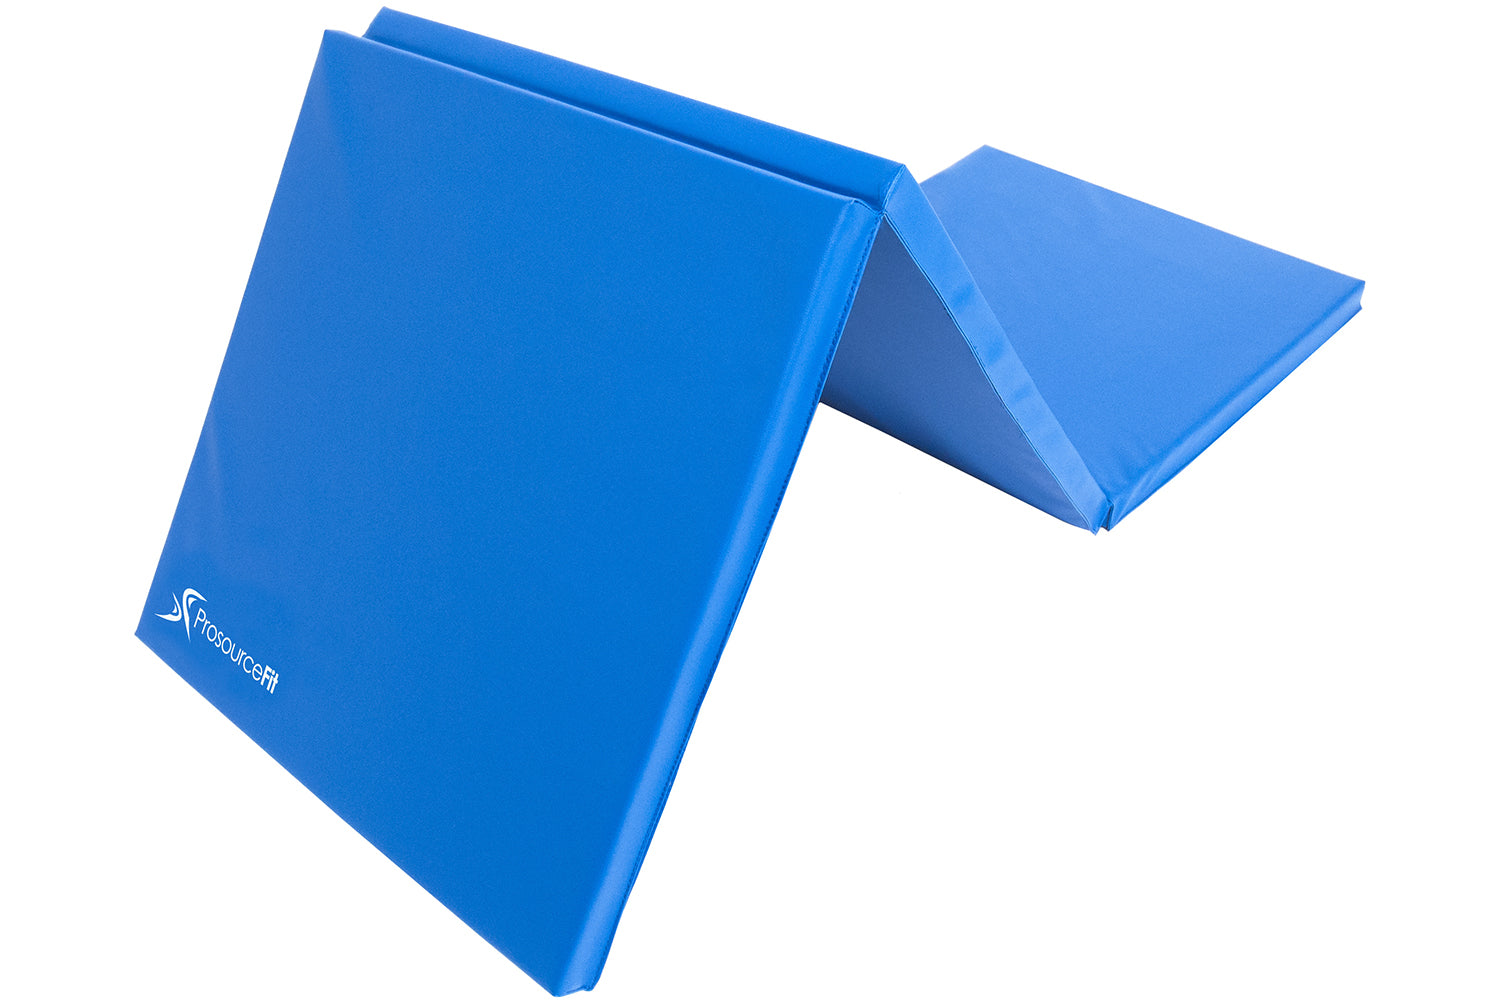 Blue Tri-Fold Folding Exercise Mat 6x2x1.5